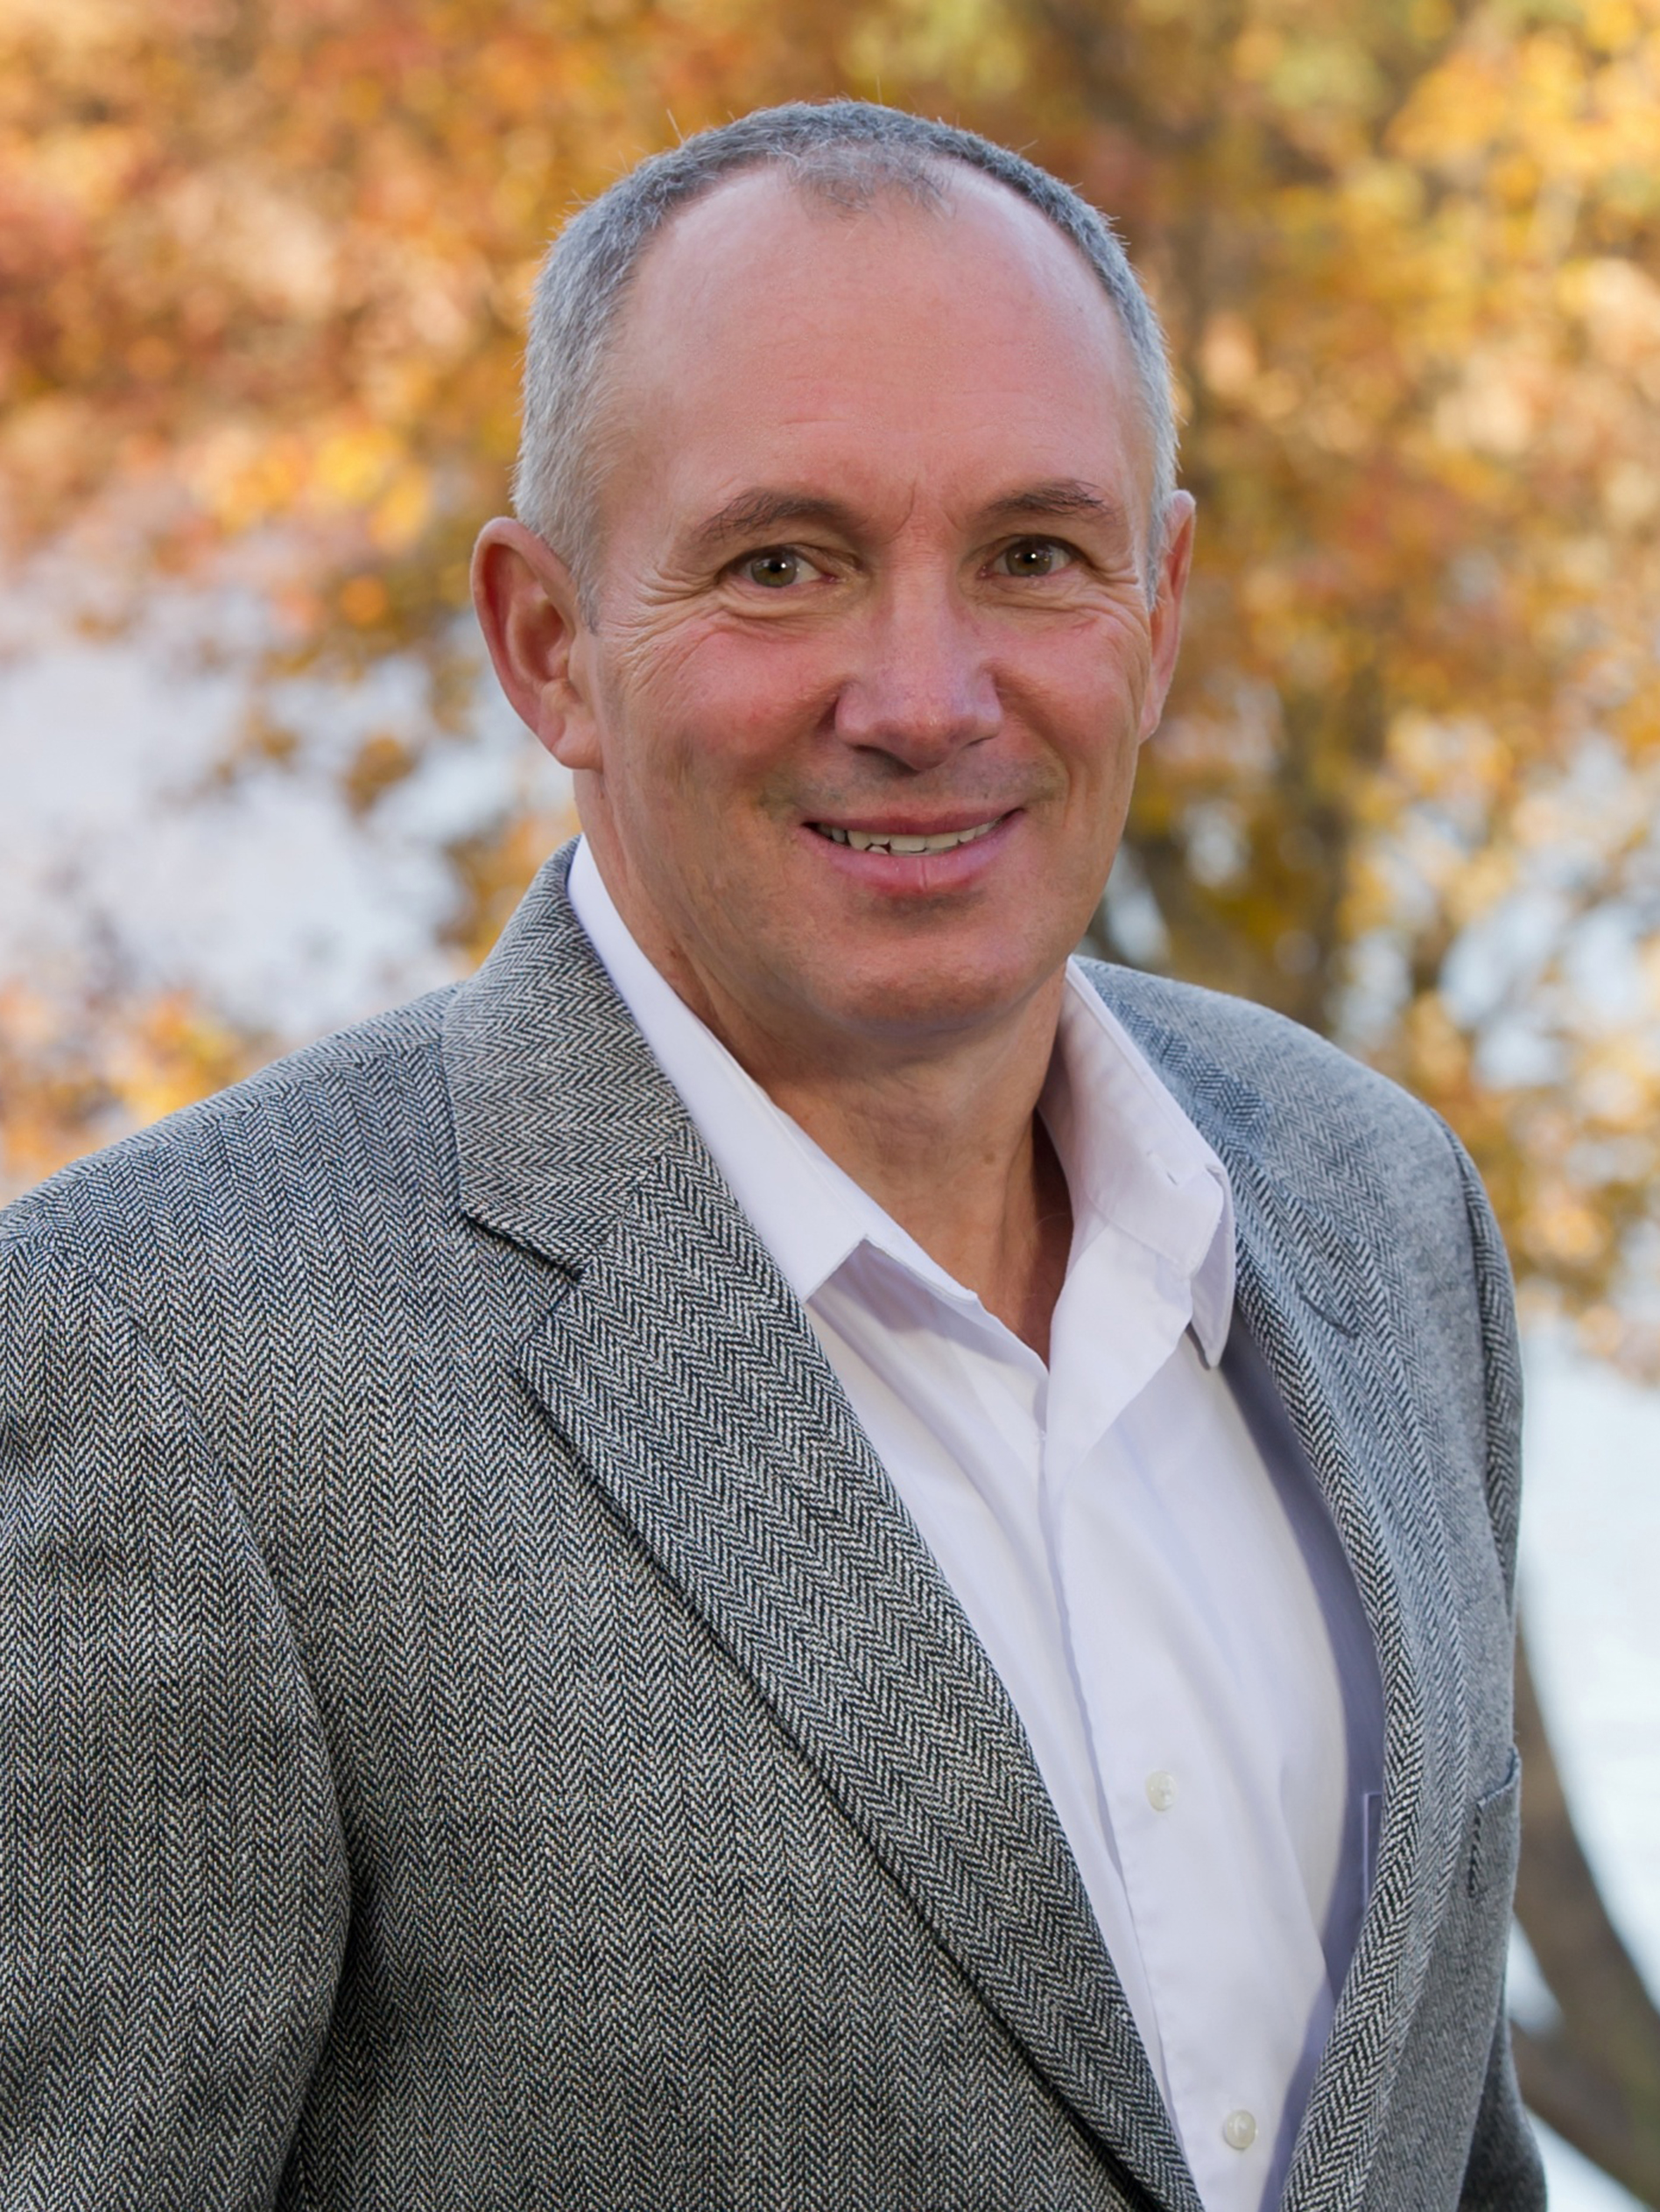 Headshot of Paul DeLuca, Senior Vice President, Distribution Center Management at Winebow